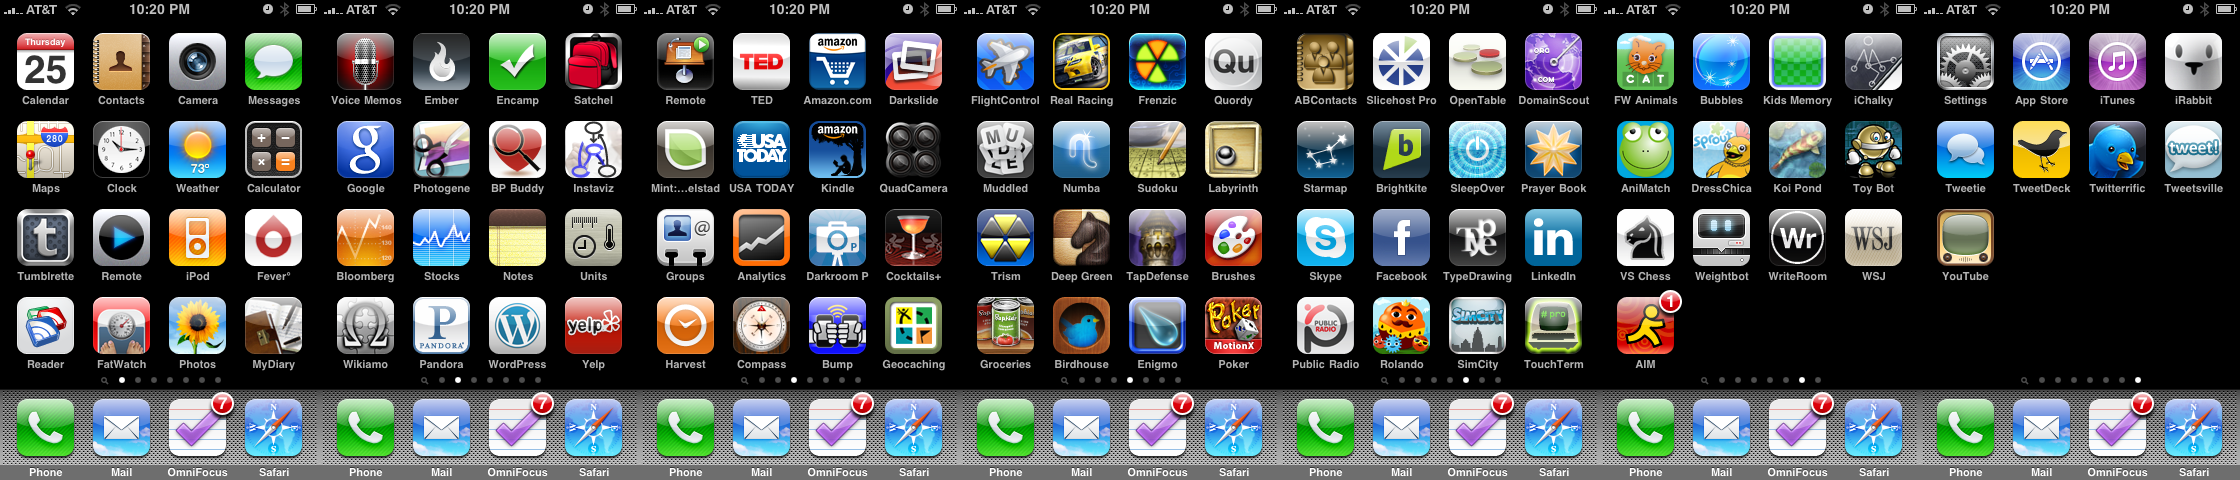 iphone-all-apps